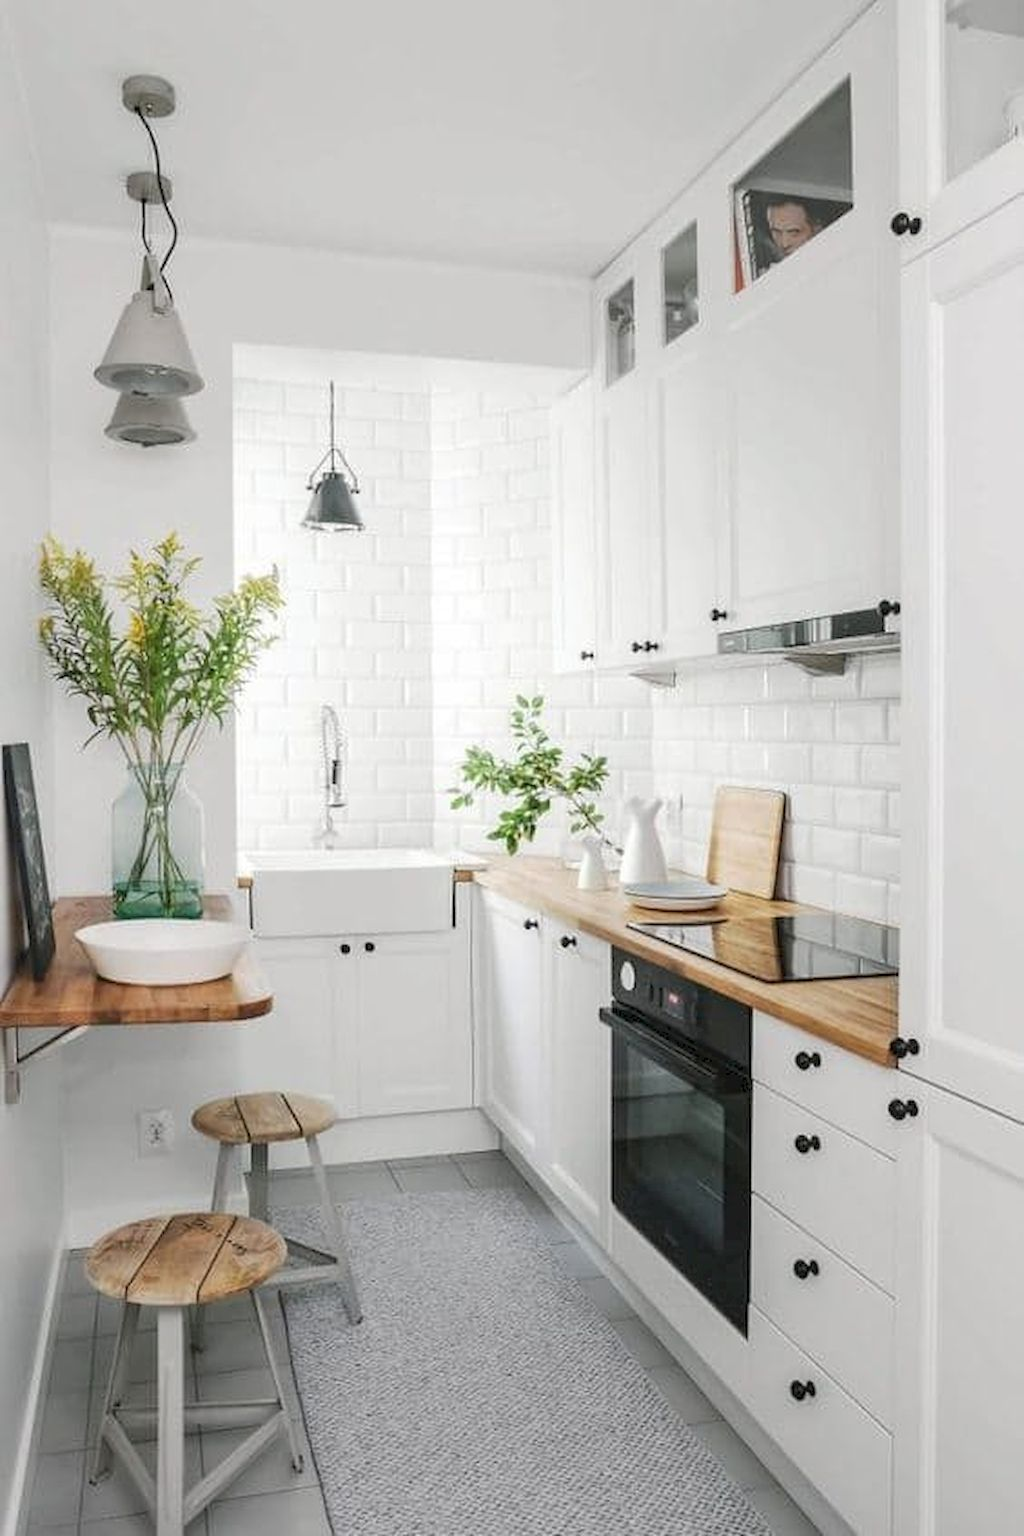 60 Small Kitchen Ideas Remodel | 50er